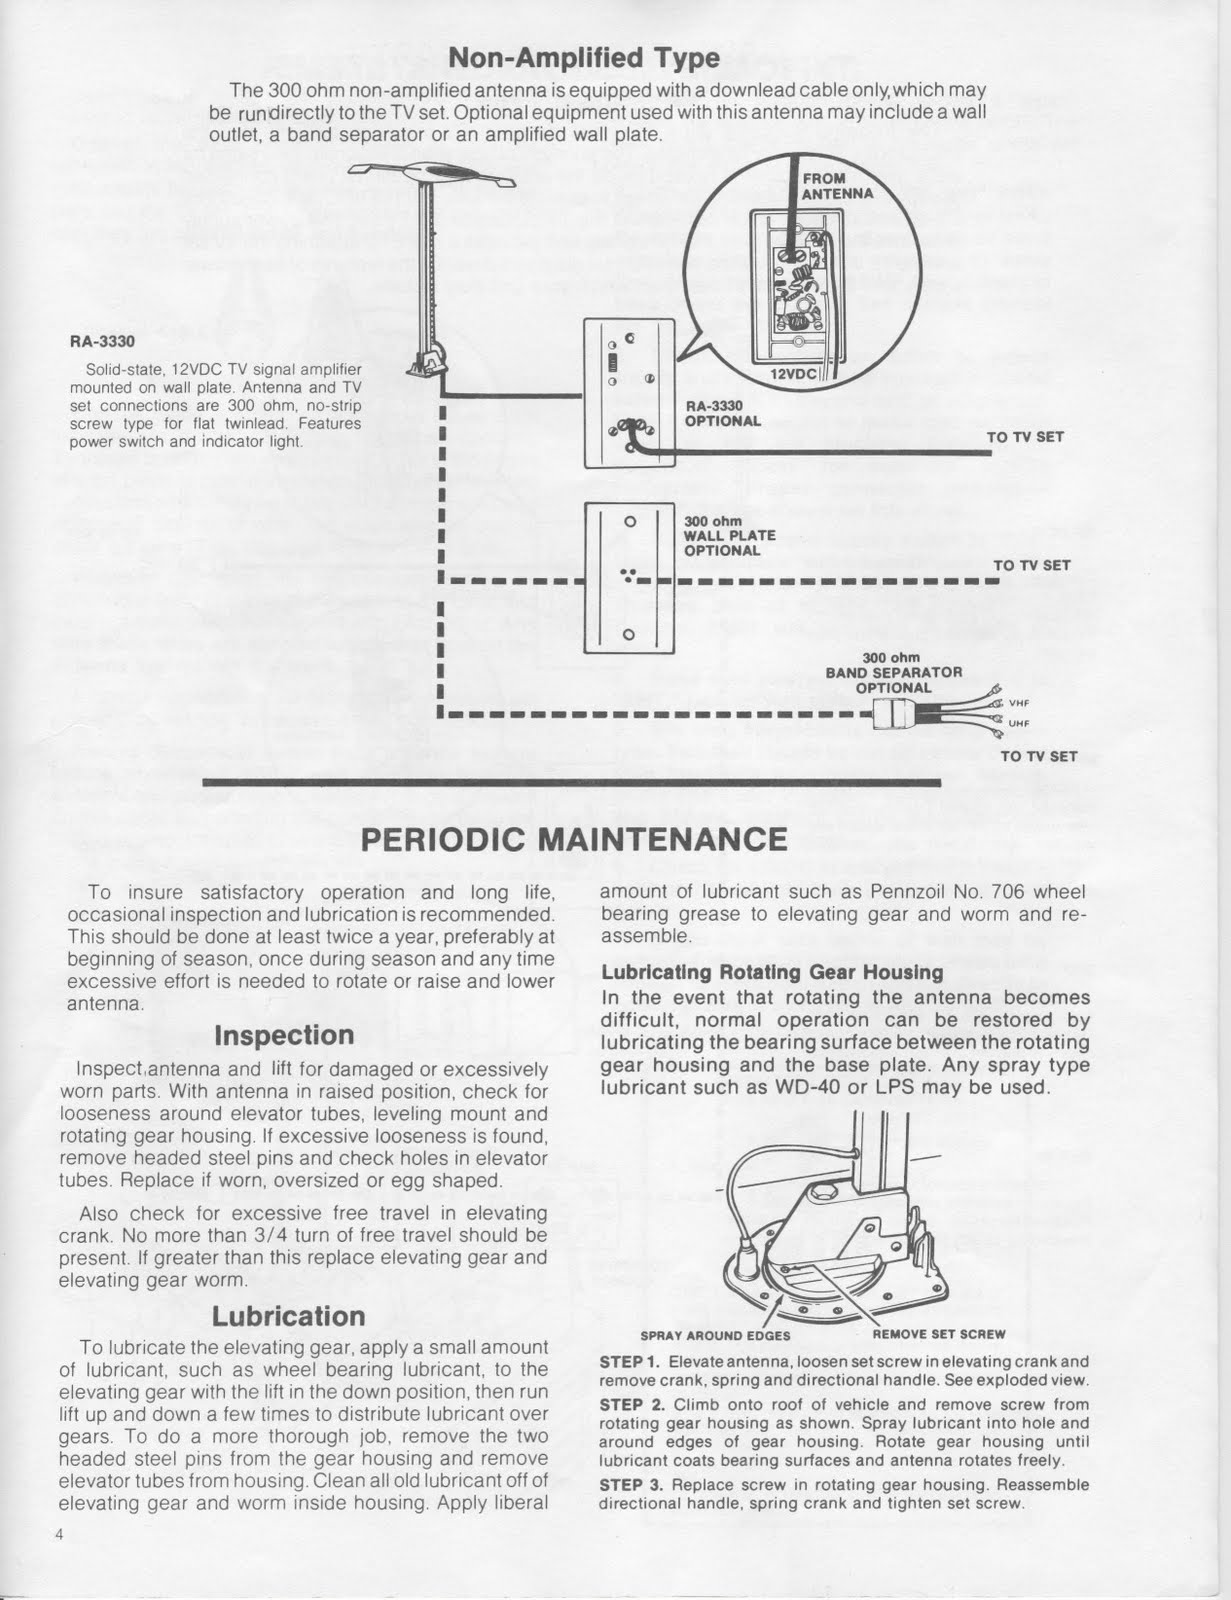 Winegard rv antenna wiring diagram wiring diagram 1983 fleetwood pace arrow owners manuals winegard rv tv antenna rh 1983fleetwoodpacearrowownersmanuals blogspot com wingard wiring diagram signal booster asfbconference2016 Images